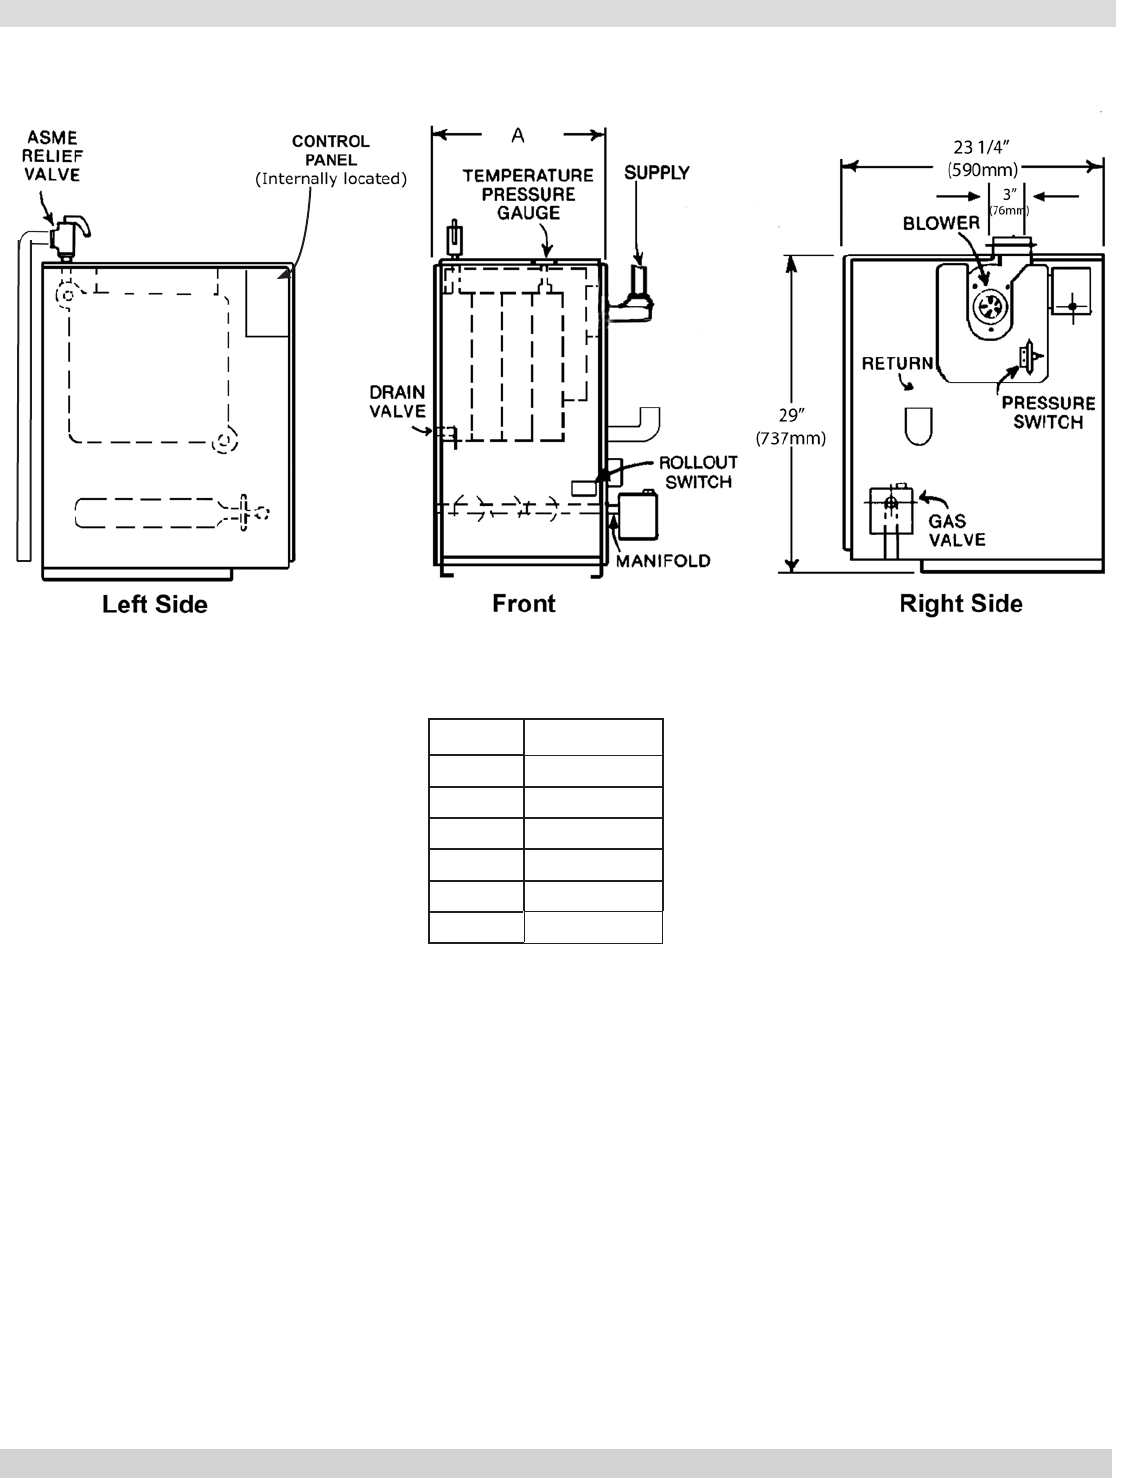 Burnham Boiler Wiring Diagram Standing Pilot Diagrams Transformer Utica For W124 Fuse Piping